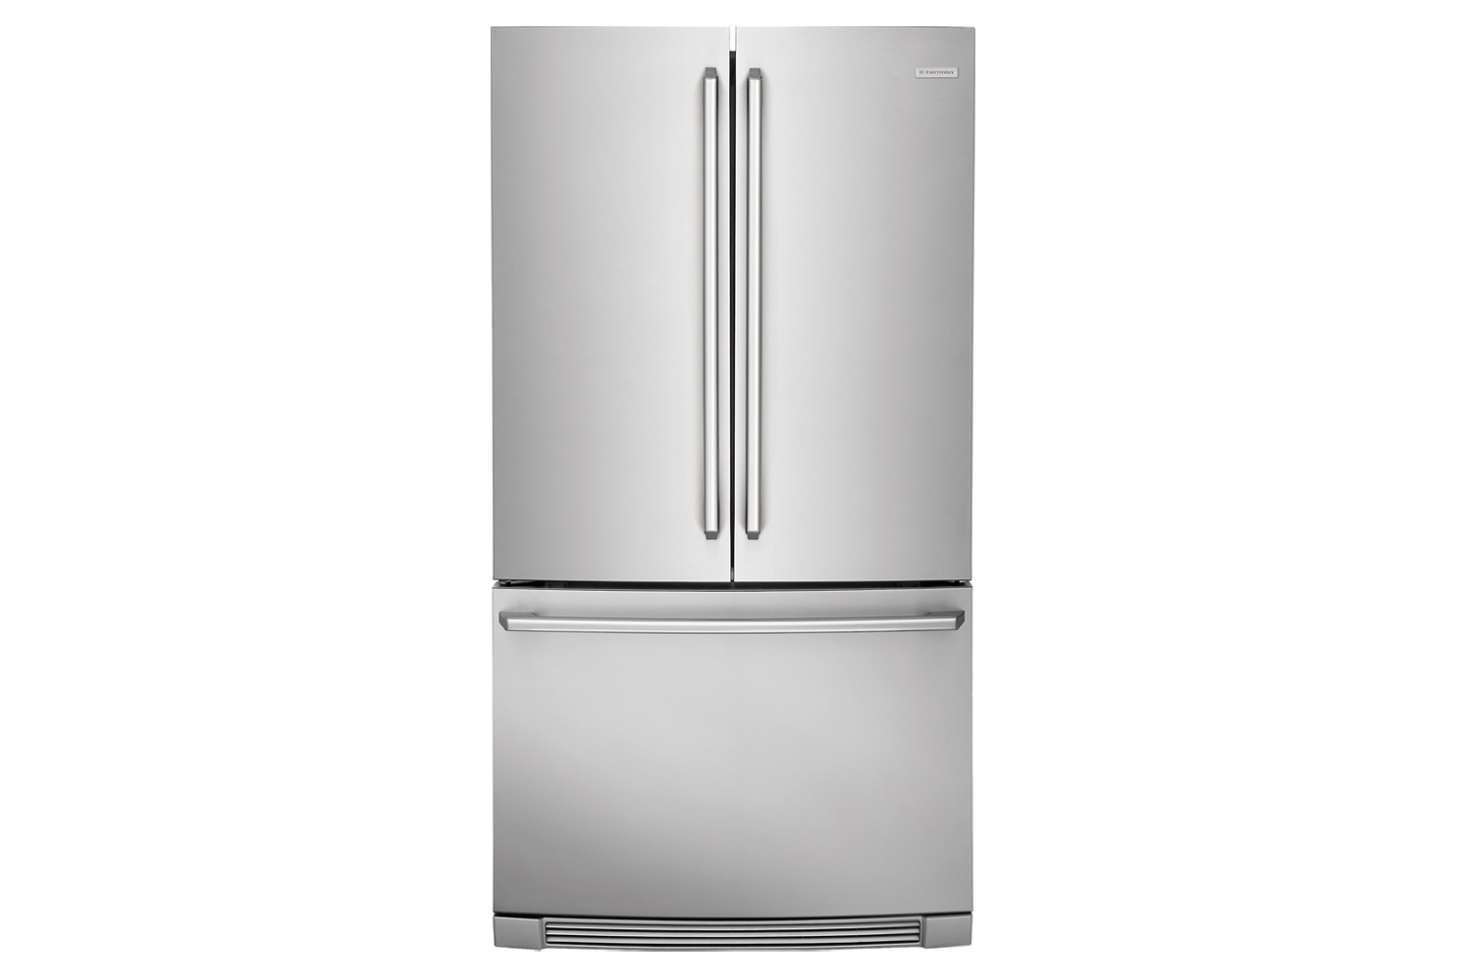 """The Electrolux 36-Inch Counter-Depth French Door Refrigerator (EI23BC82SS) includes what the manufacturers call an """"IQ-Touch"""" control and self-closing doors. It's 28 1/2 inches deep and $3,143.10 at US Appliance."""